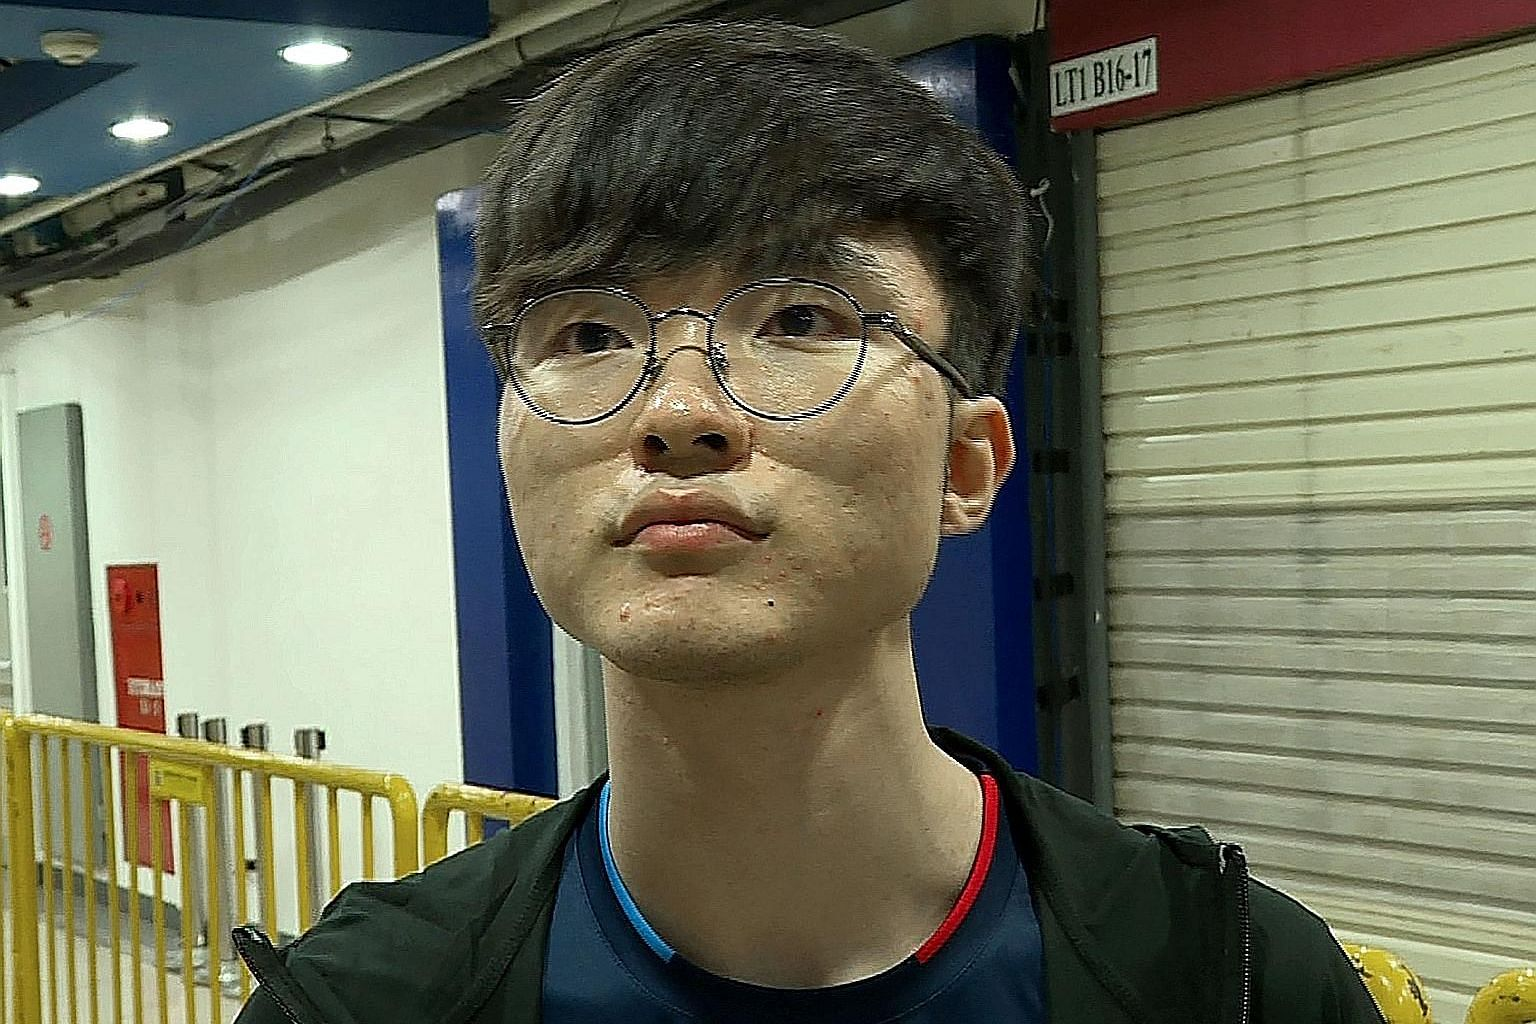 South Korean Lee Sang-hyeok, better known as Faker, says e-sports deserves a place at major Games as it has better growth potential than other sports.